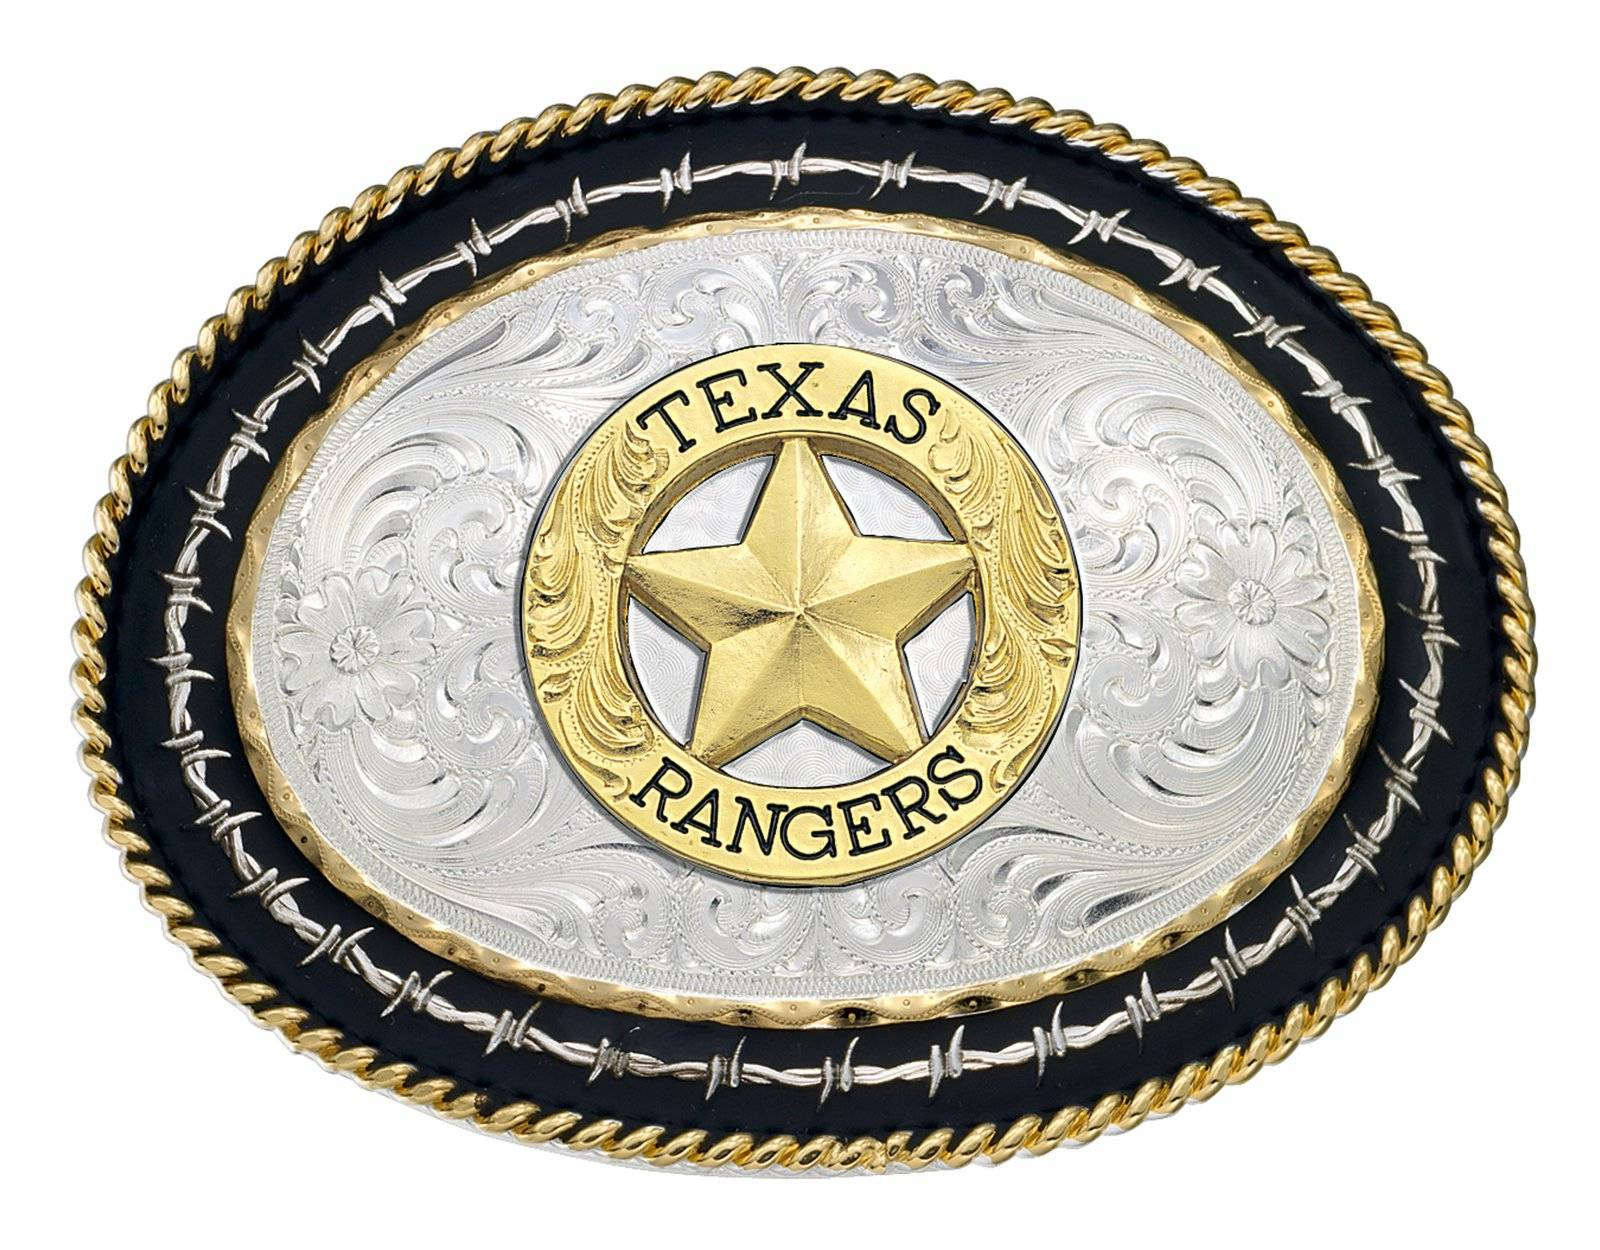 Montana Silversmiths Twisted Rope And Barbed Wire Belt Buckle with Texas Rangers Emblem